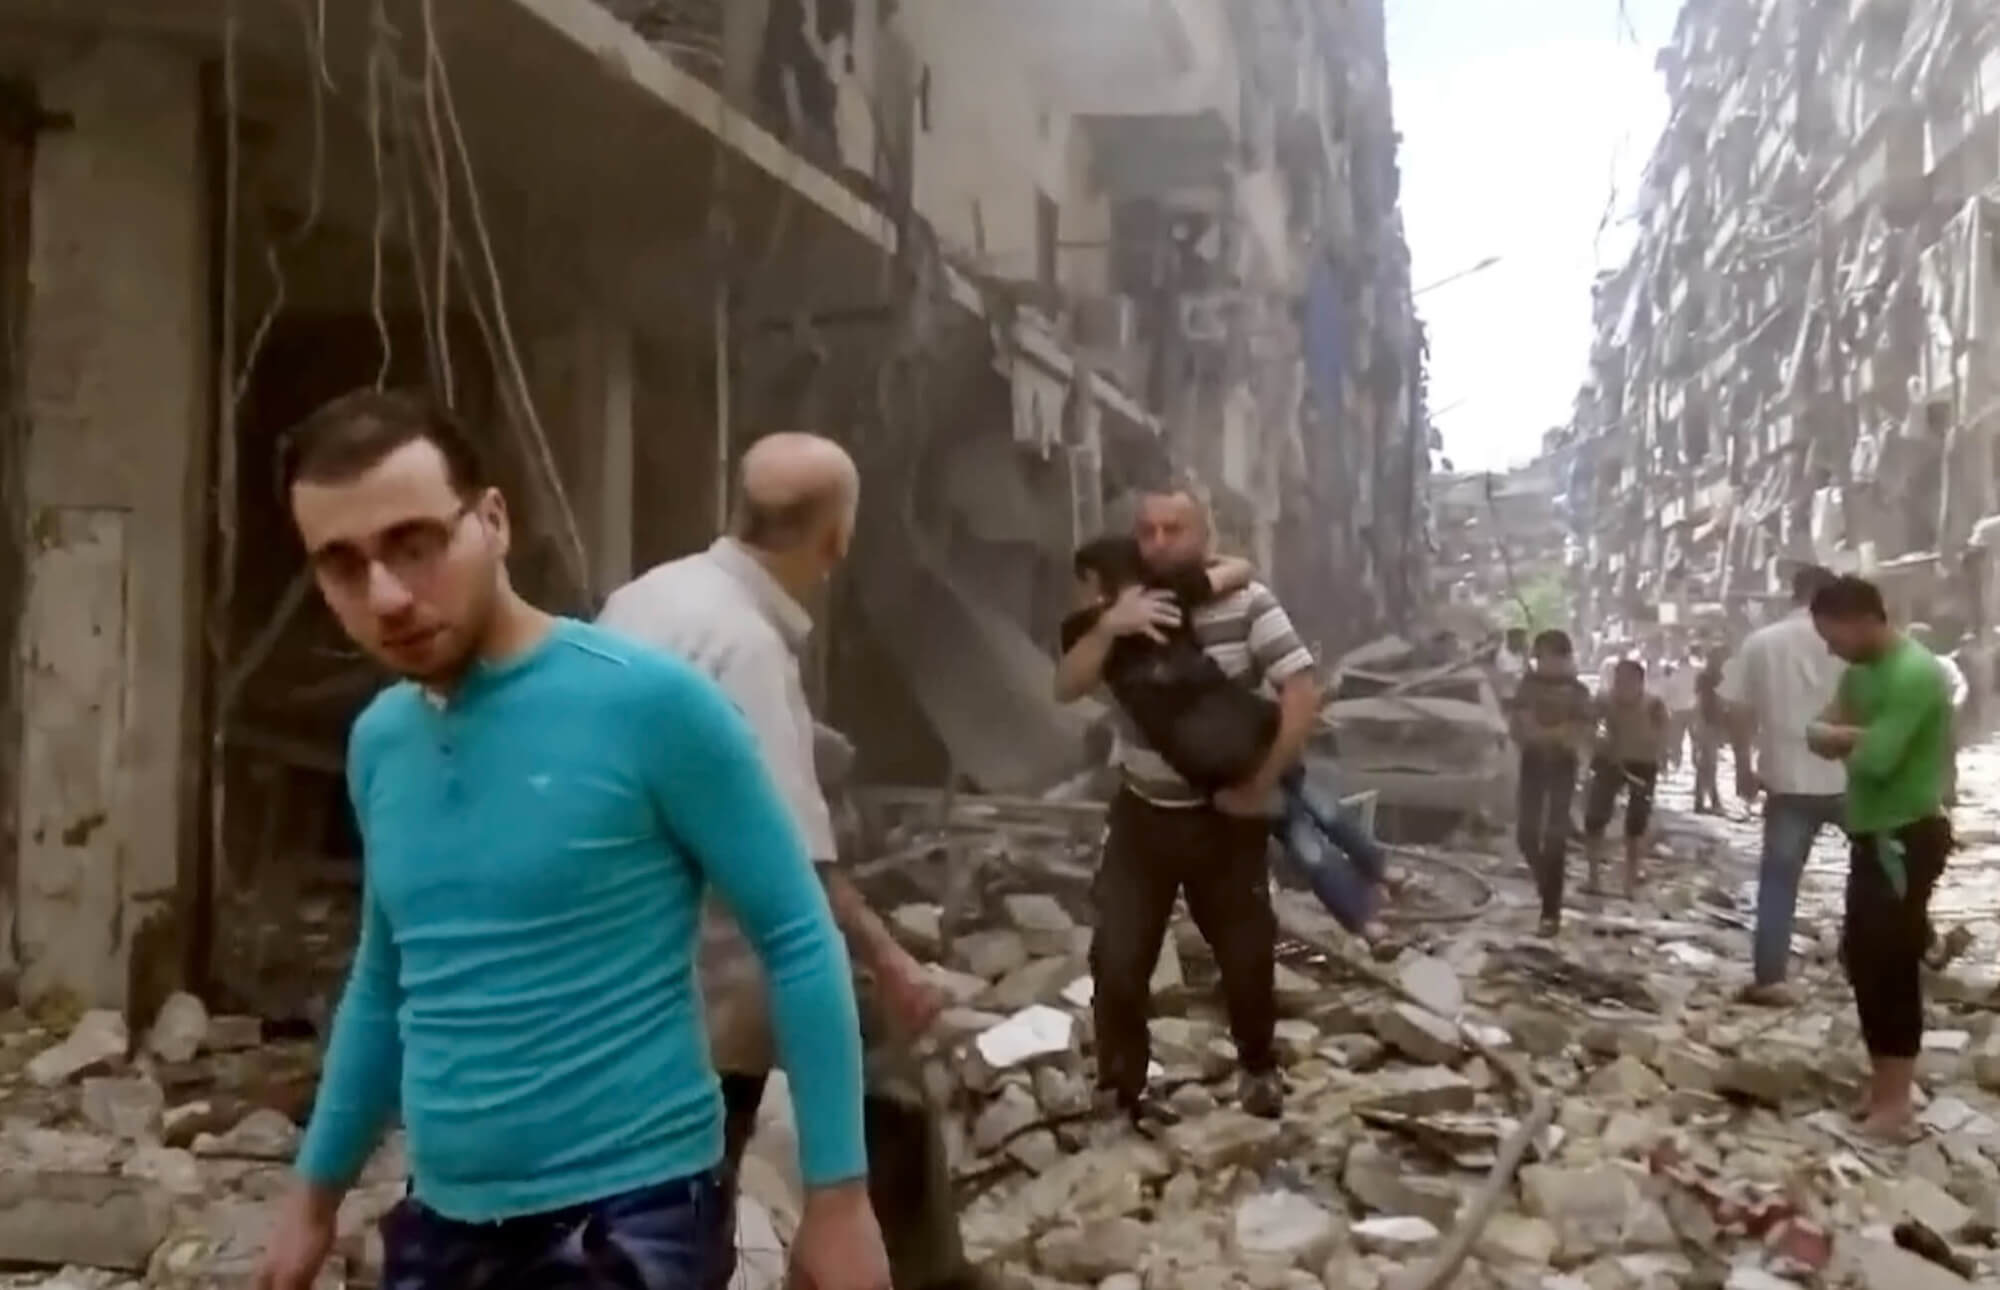 surviors walk through rubble and debris from airstrike in Syria